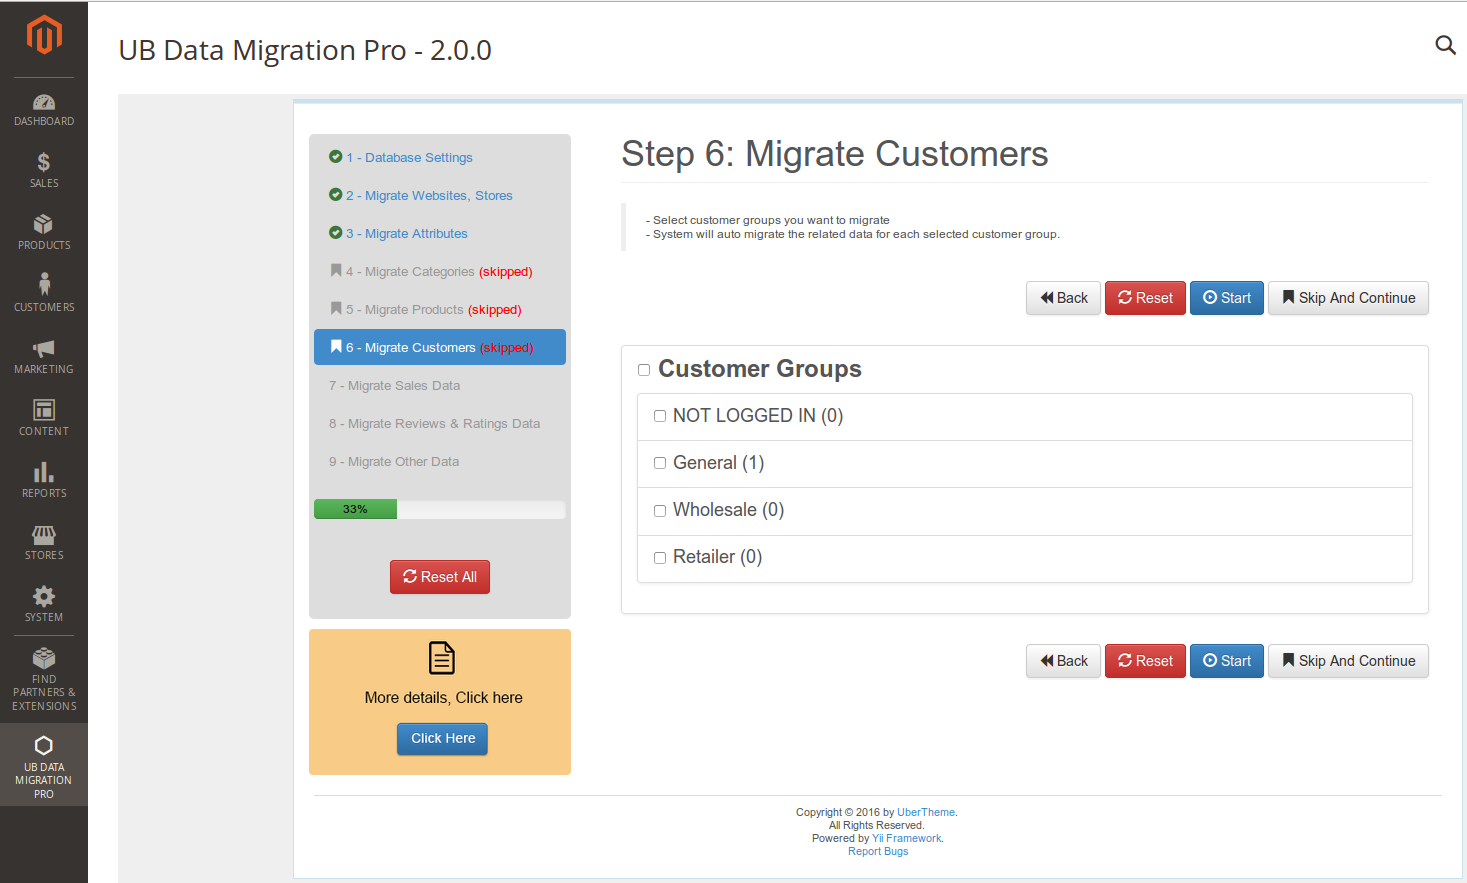 Step 6 - Migrate Customers